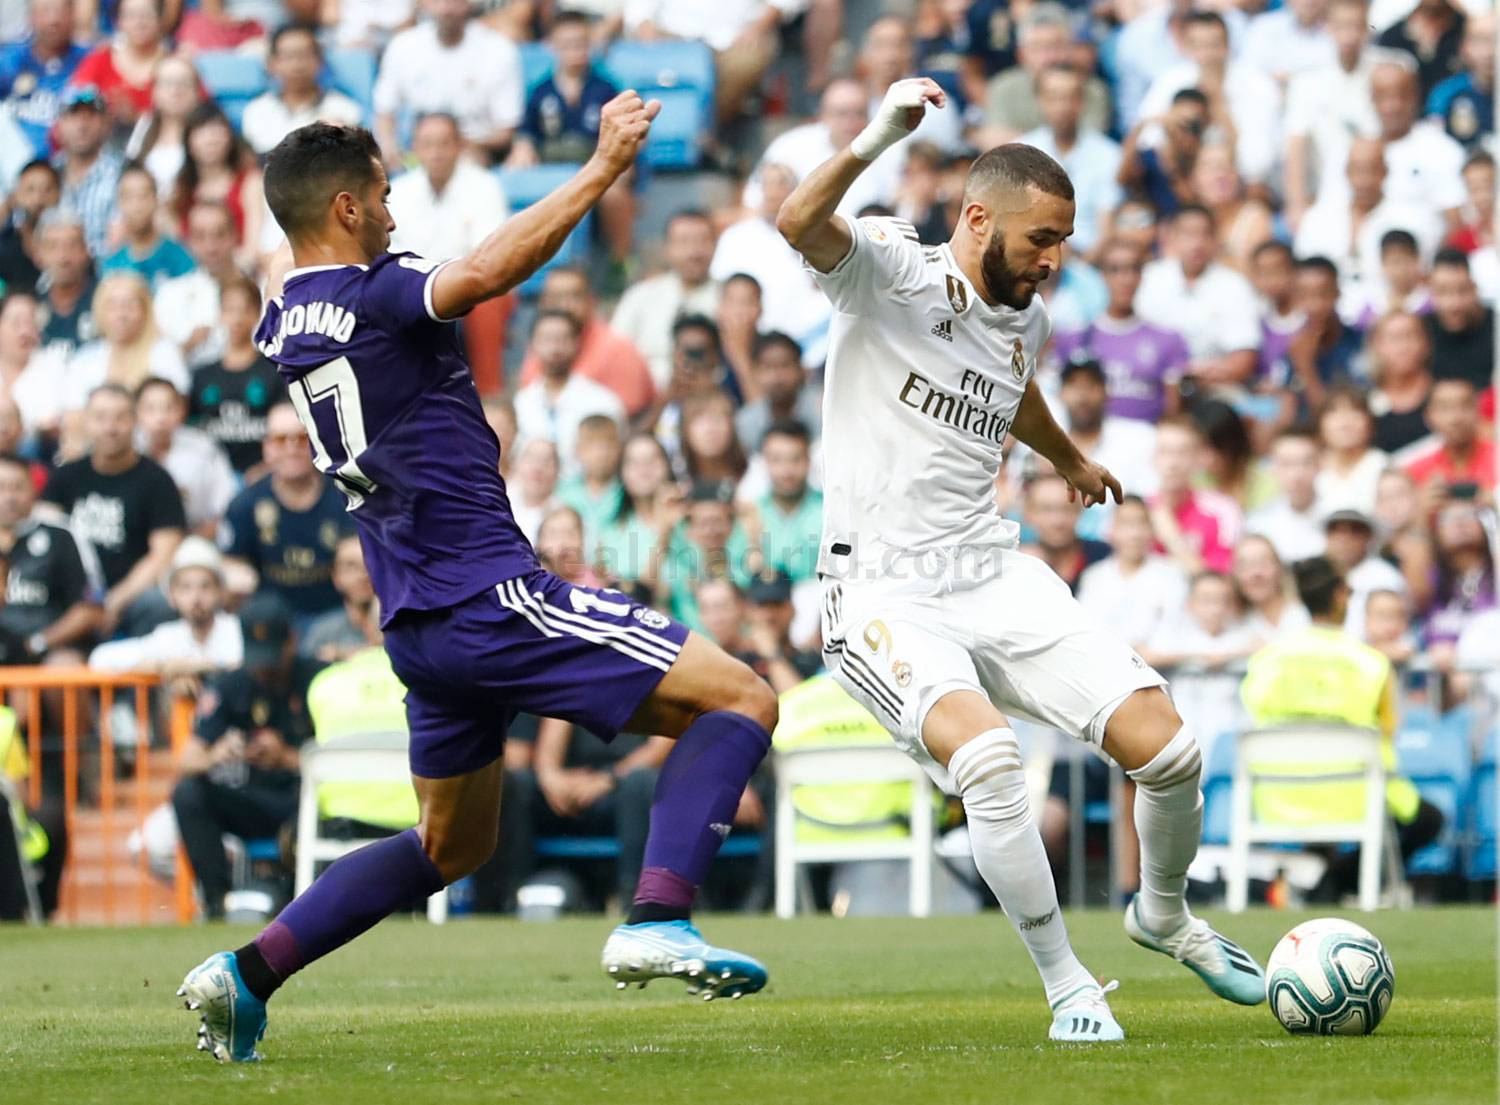 Real Madrid - Real Madrid - Valladolid - 24-08-2019